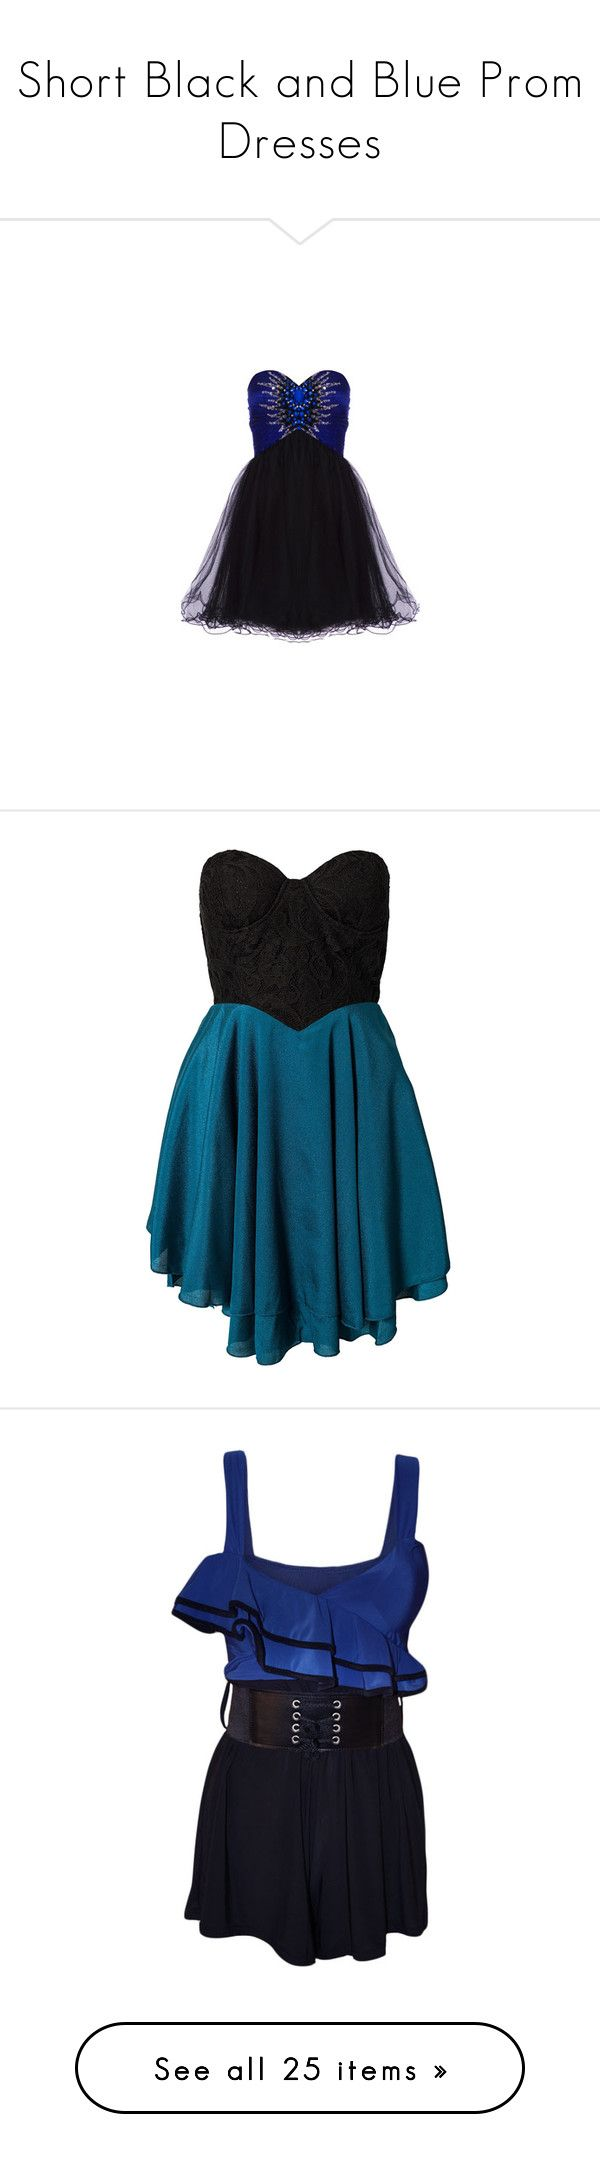 """""""Short Black and Blue Prom Dresses"""" by xxbeauty4rmpainxx ❤ liked on Polyvore featuring dresses, vestidos, short dresses, vestiti, asos cocktail dresses, mini dress, blue cocktail dresses, blue dress, robe and party dresses"""